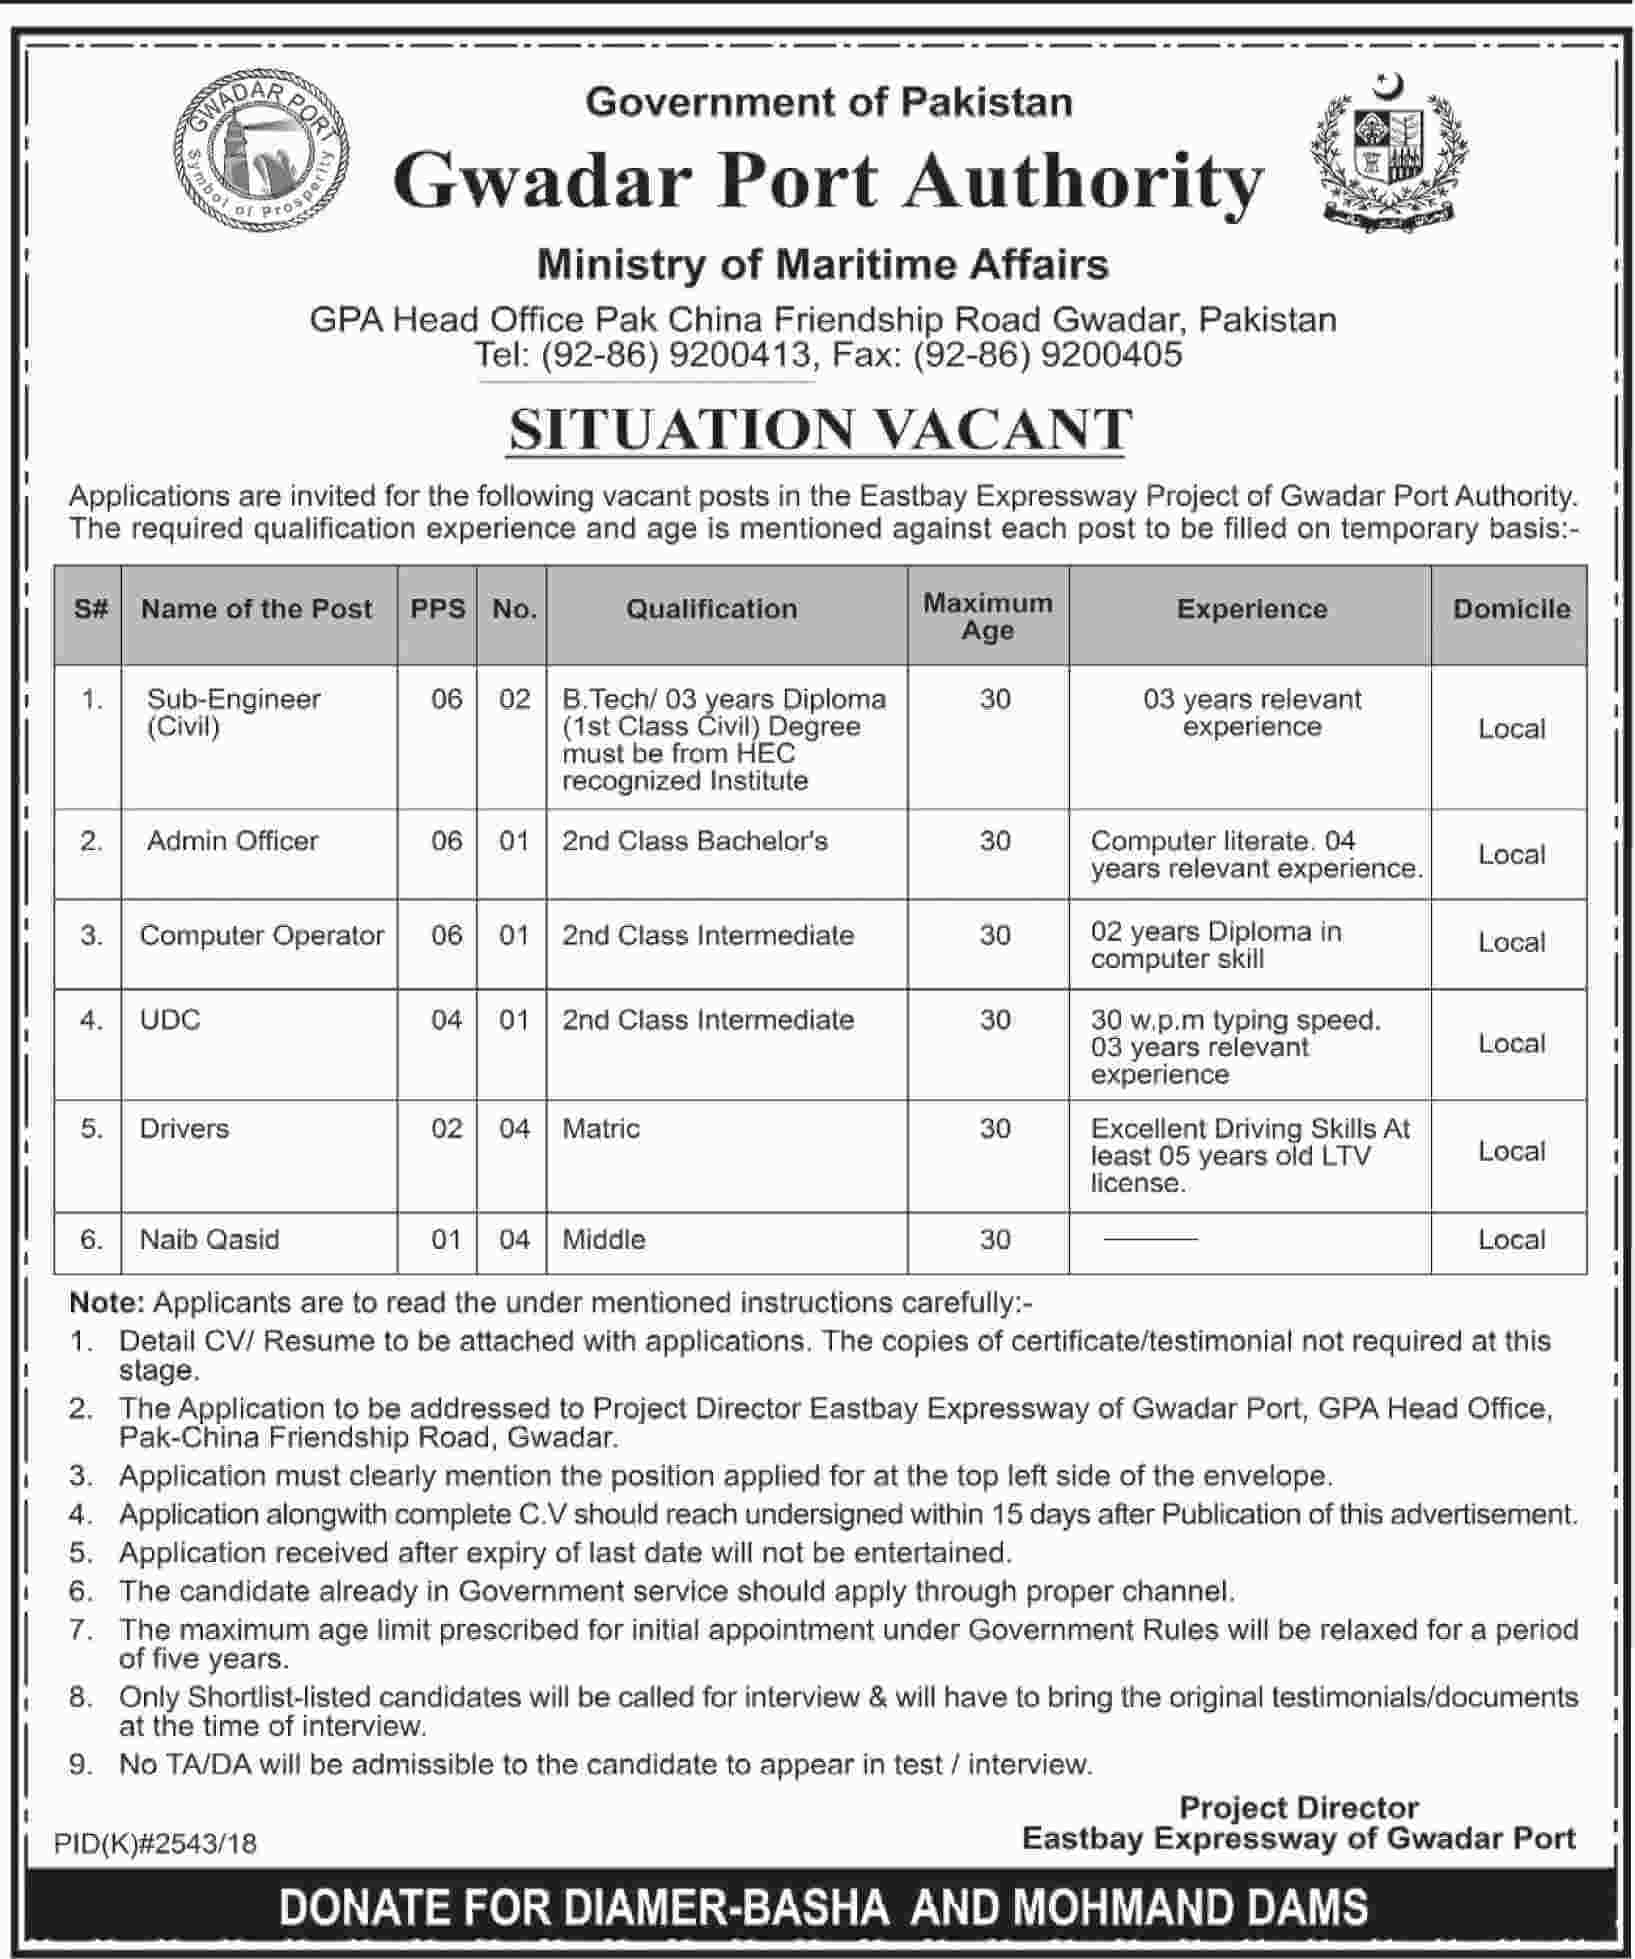 Gwadar Port Authority Jobs 2019 Ministry Of Maritime Affairs in Blochistan on January, 2019 | Government